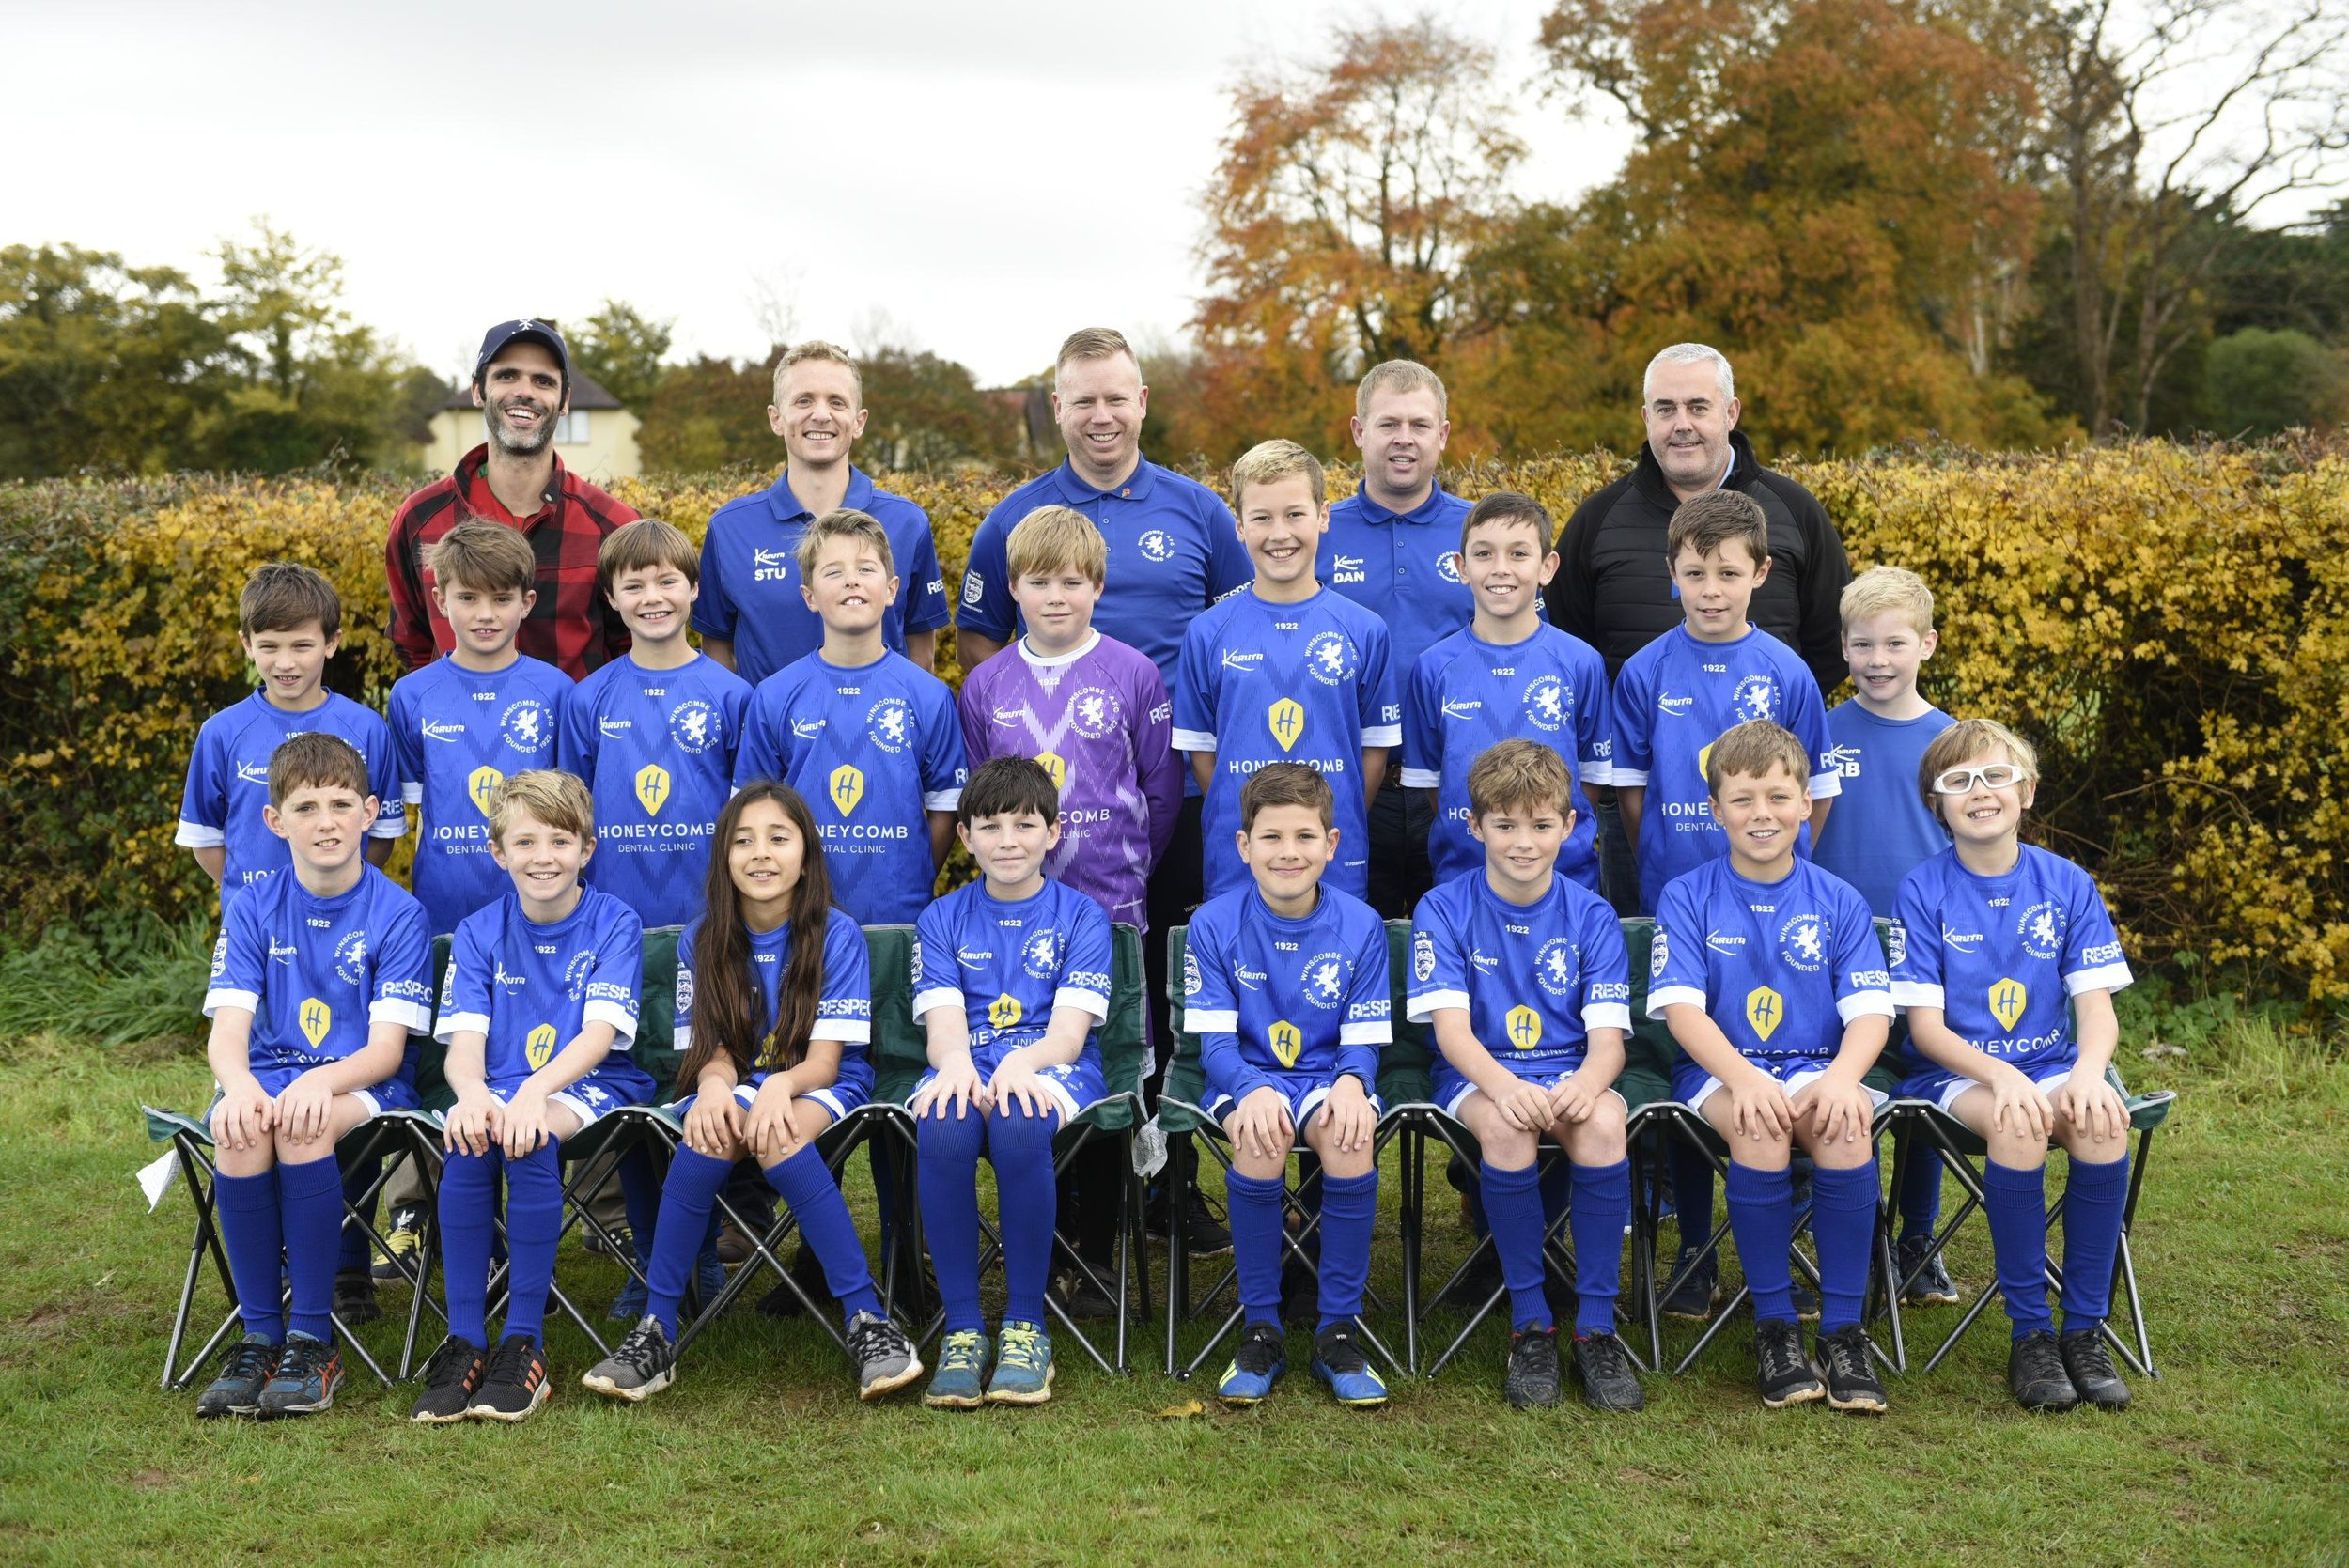 HCD_Wincombe_warriors_football_kit_team_photo_with_miguel_nov_2018.jpg